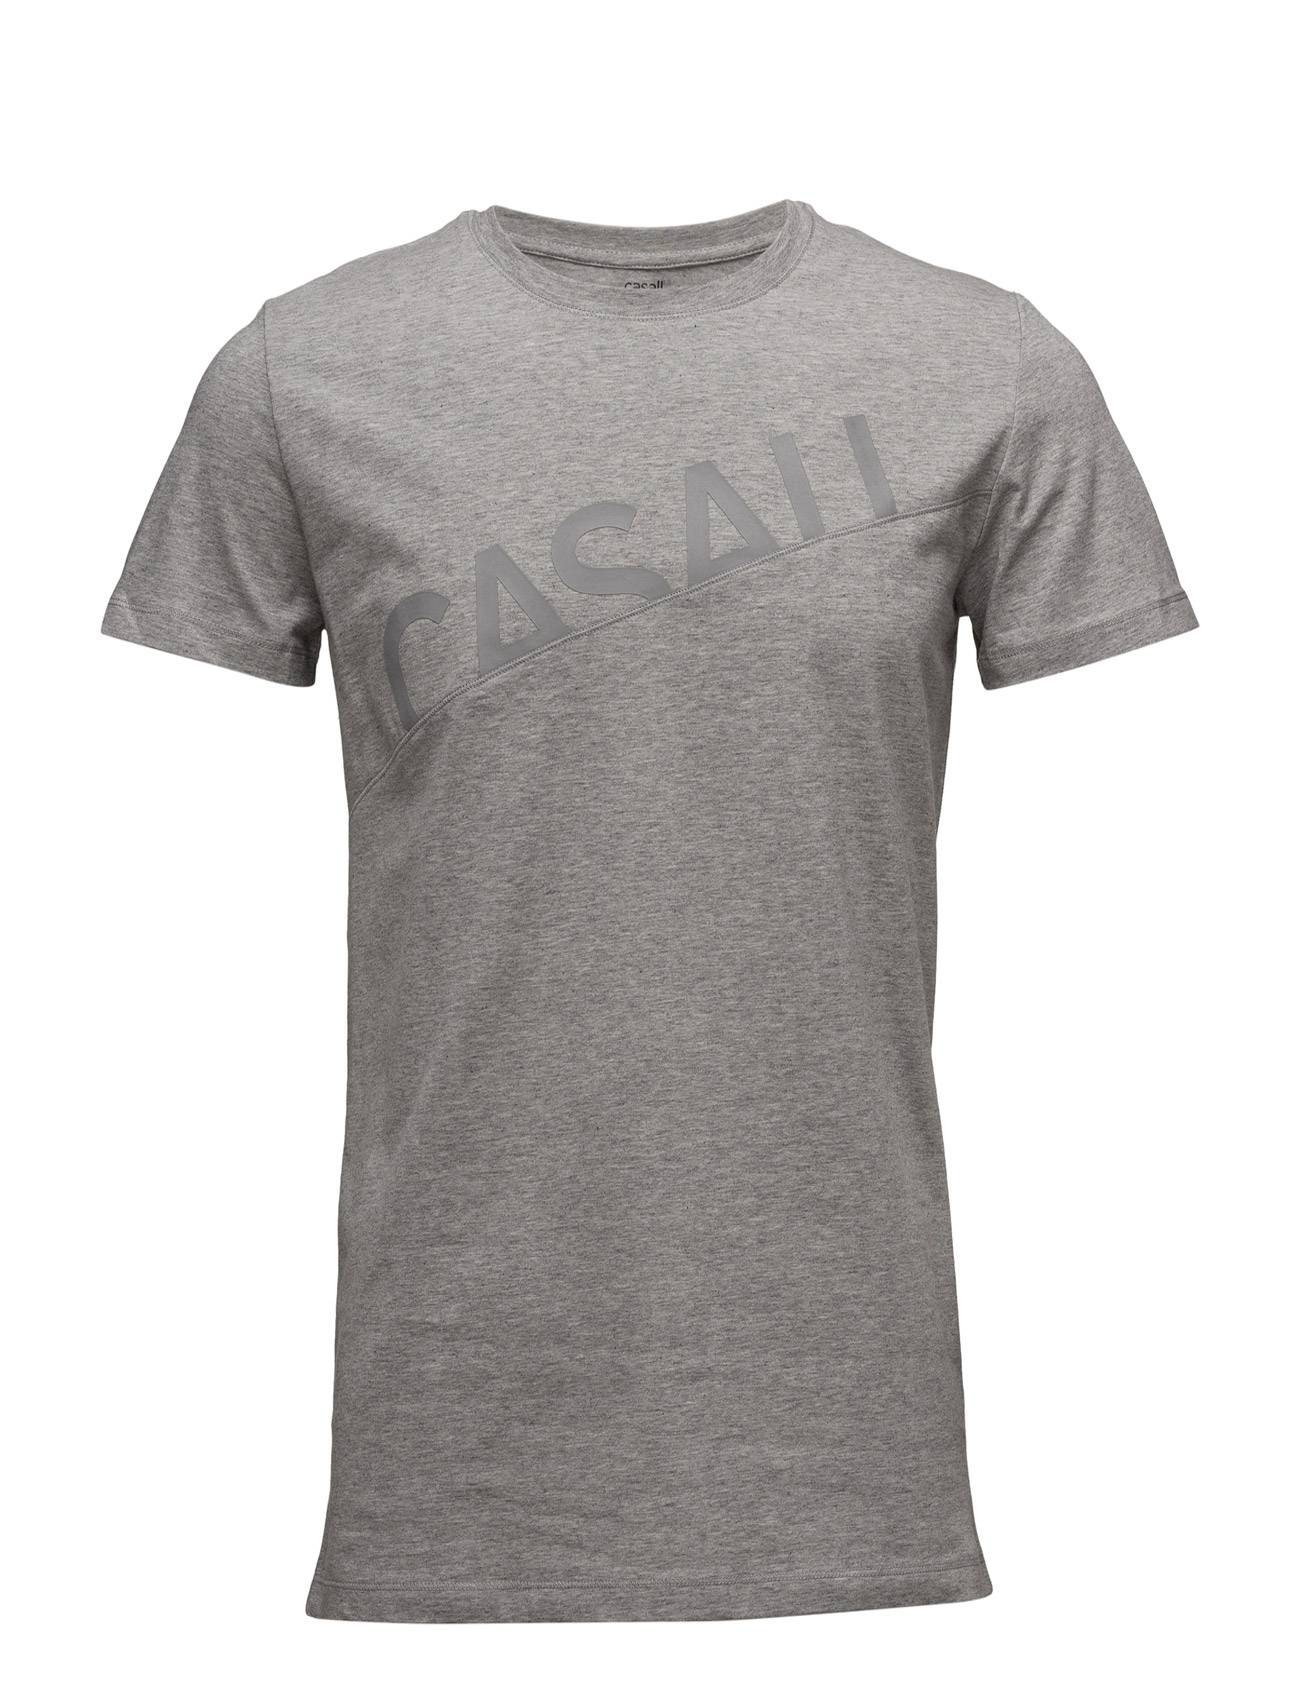 Casall M Graphic Tee